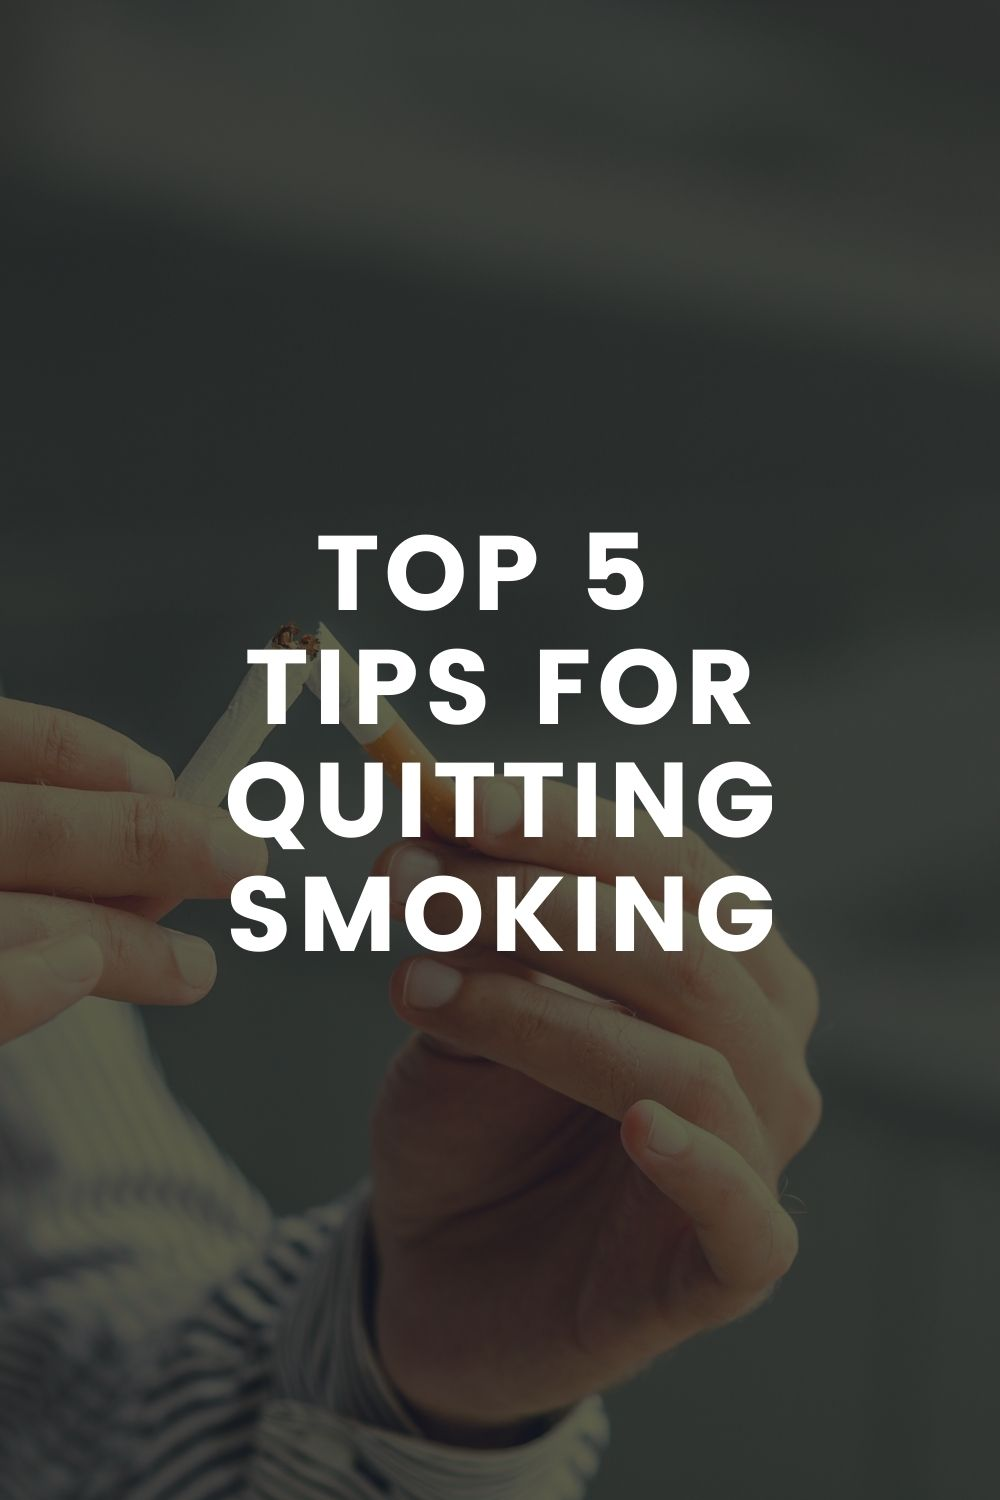 Top 5 Tips For Quitting Smoking